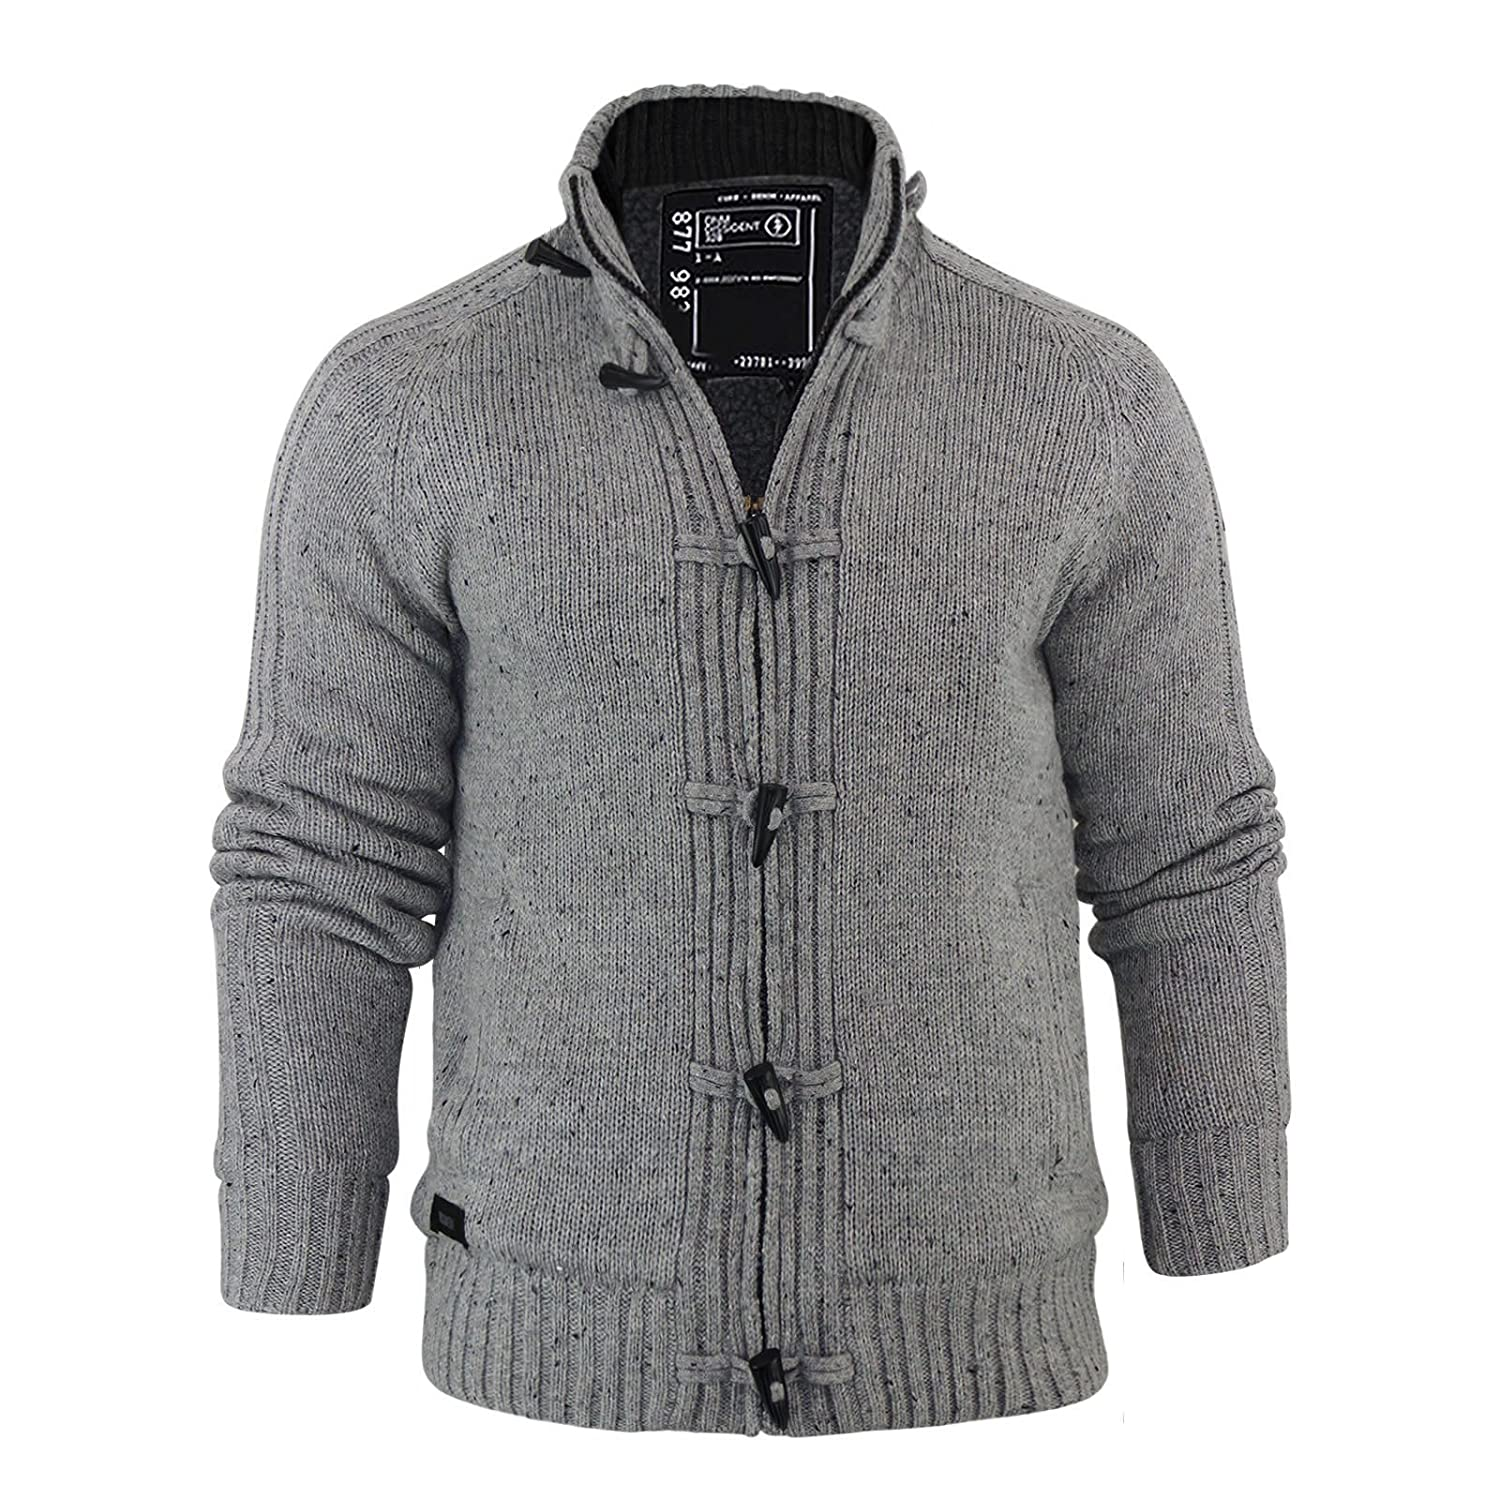 EEZEECAT Men's Sherpa Lined Chunky Knit Warm Fleece Cardigan With ...